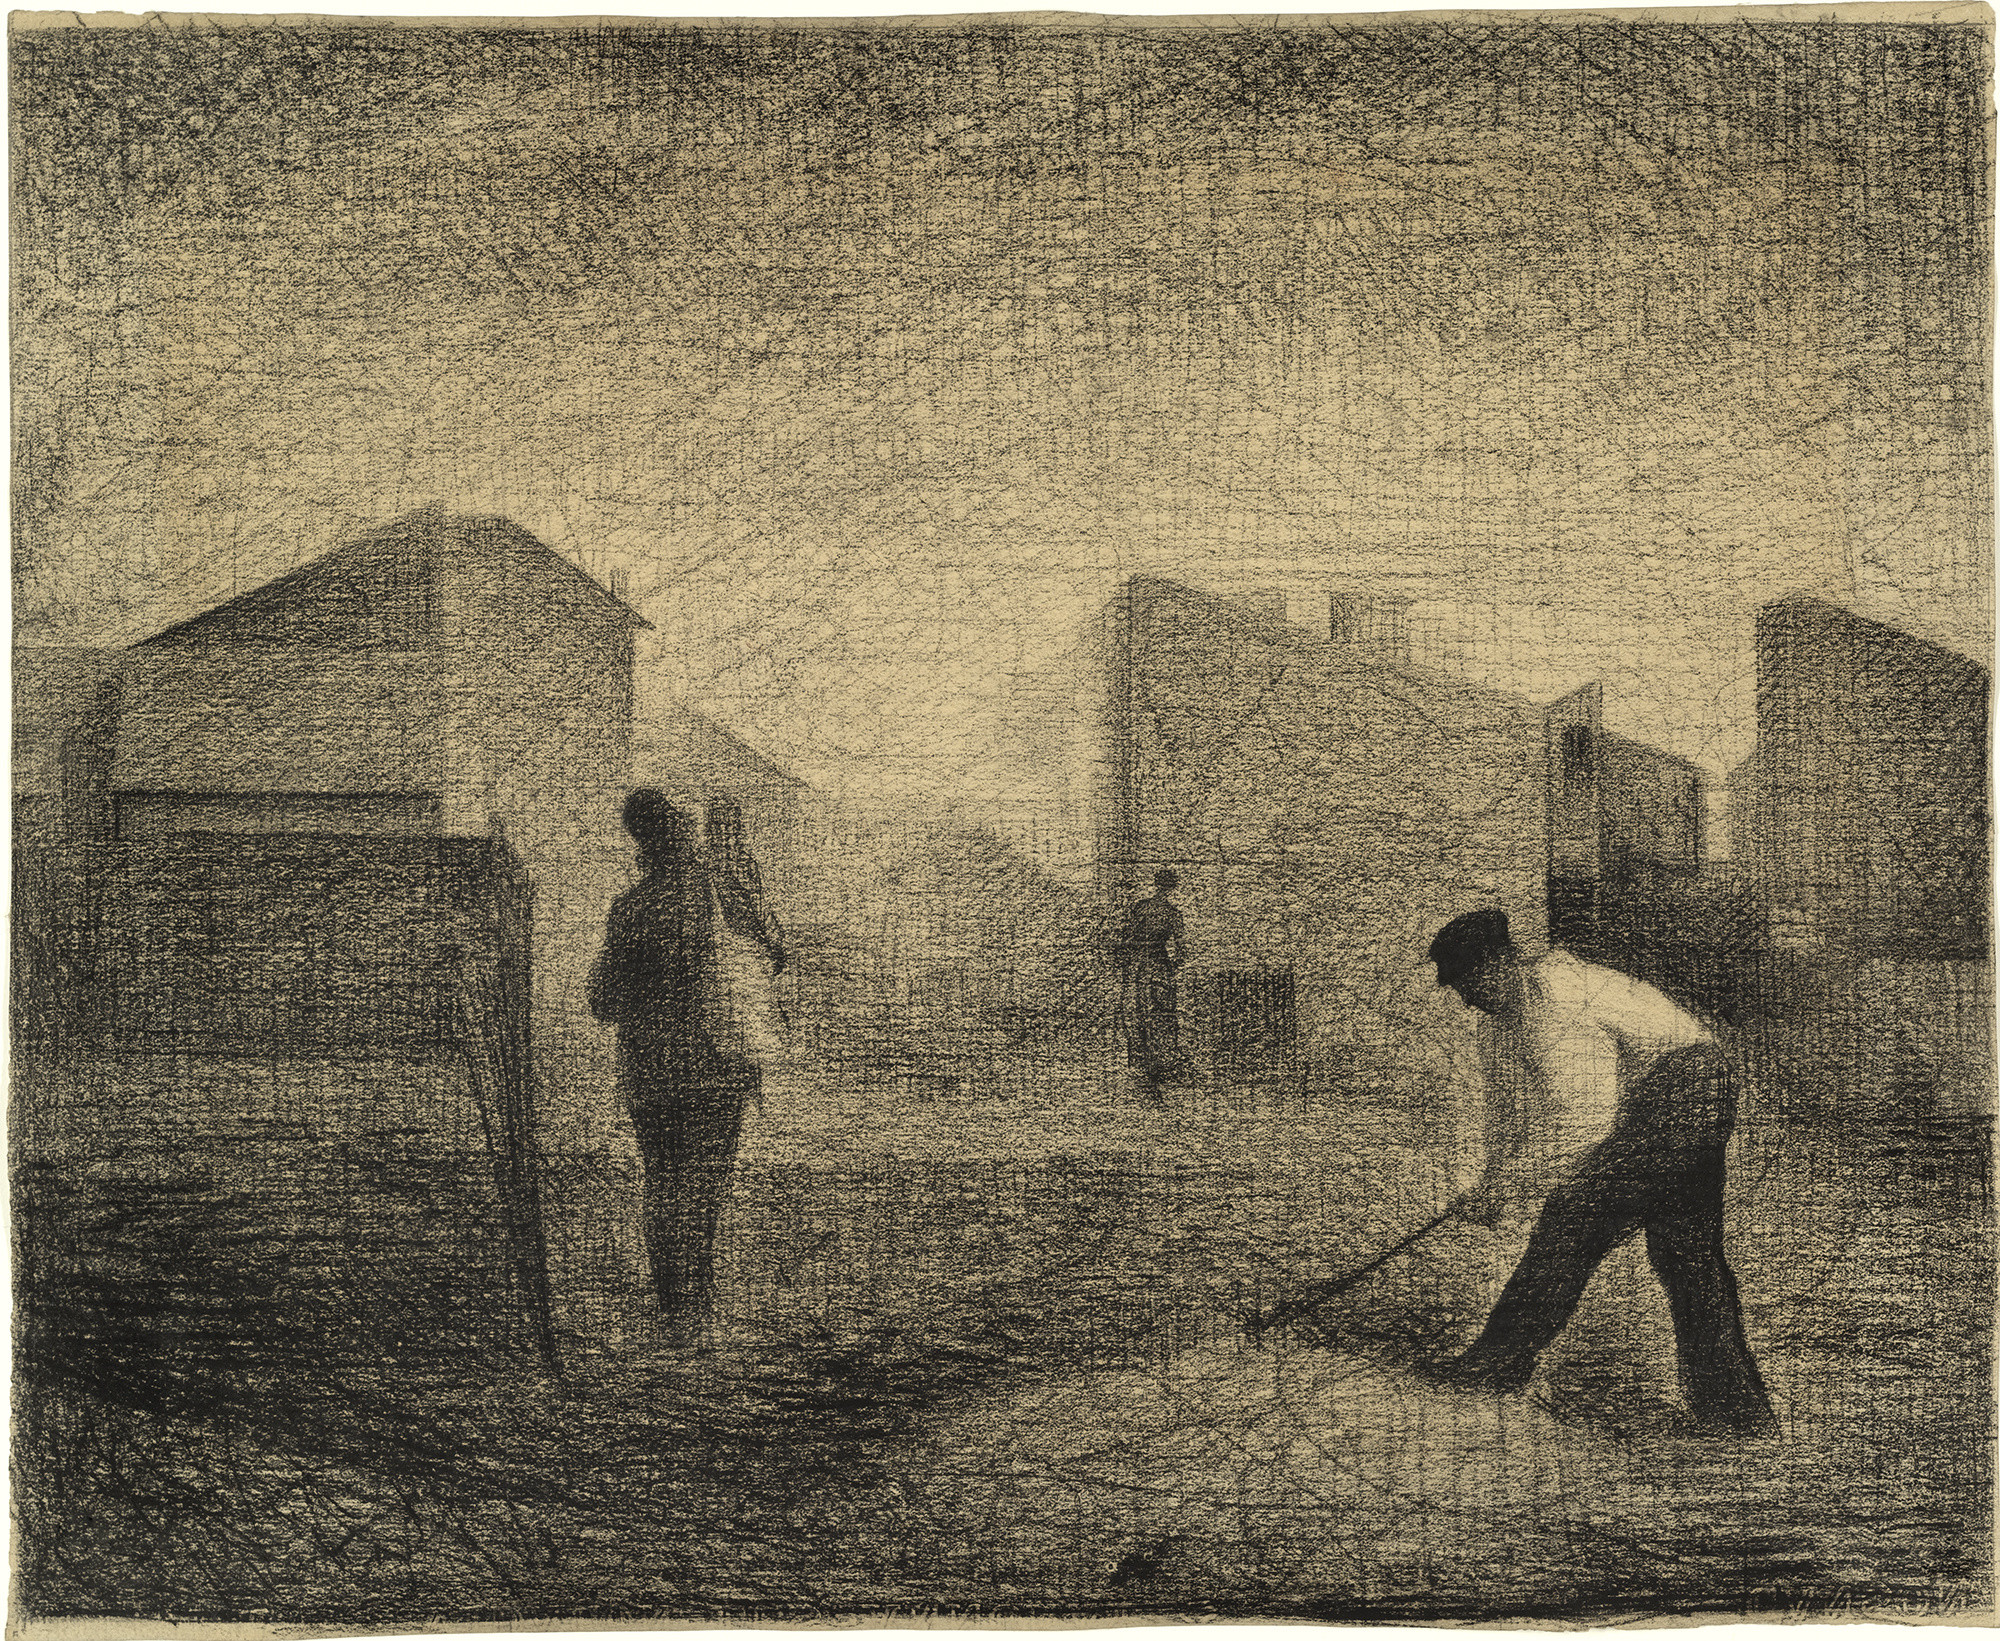 Georges-Pierre Seurat. Stone Breaker, Le Raincy. c. 1879–81. Conté crayon and graphite on paper, 12 1⁄8 × 14 3/4″ (30.8 × 37.5 cm). The Museum of Modern Art. Lillie P. Bliss Collection